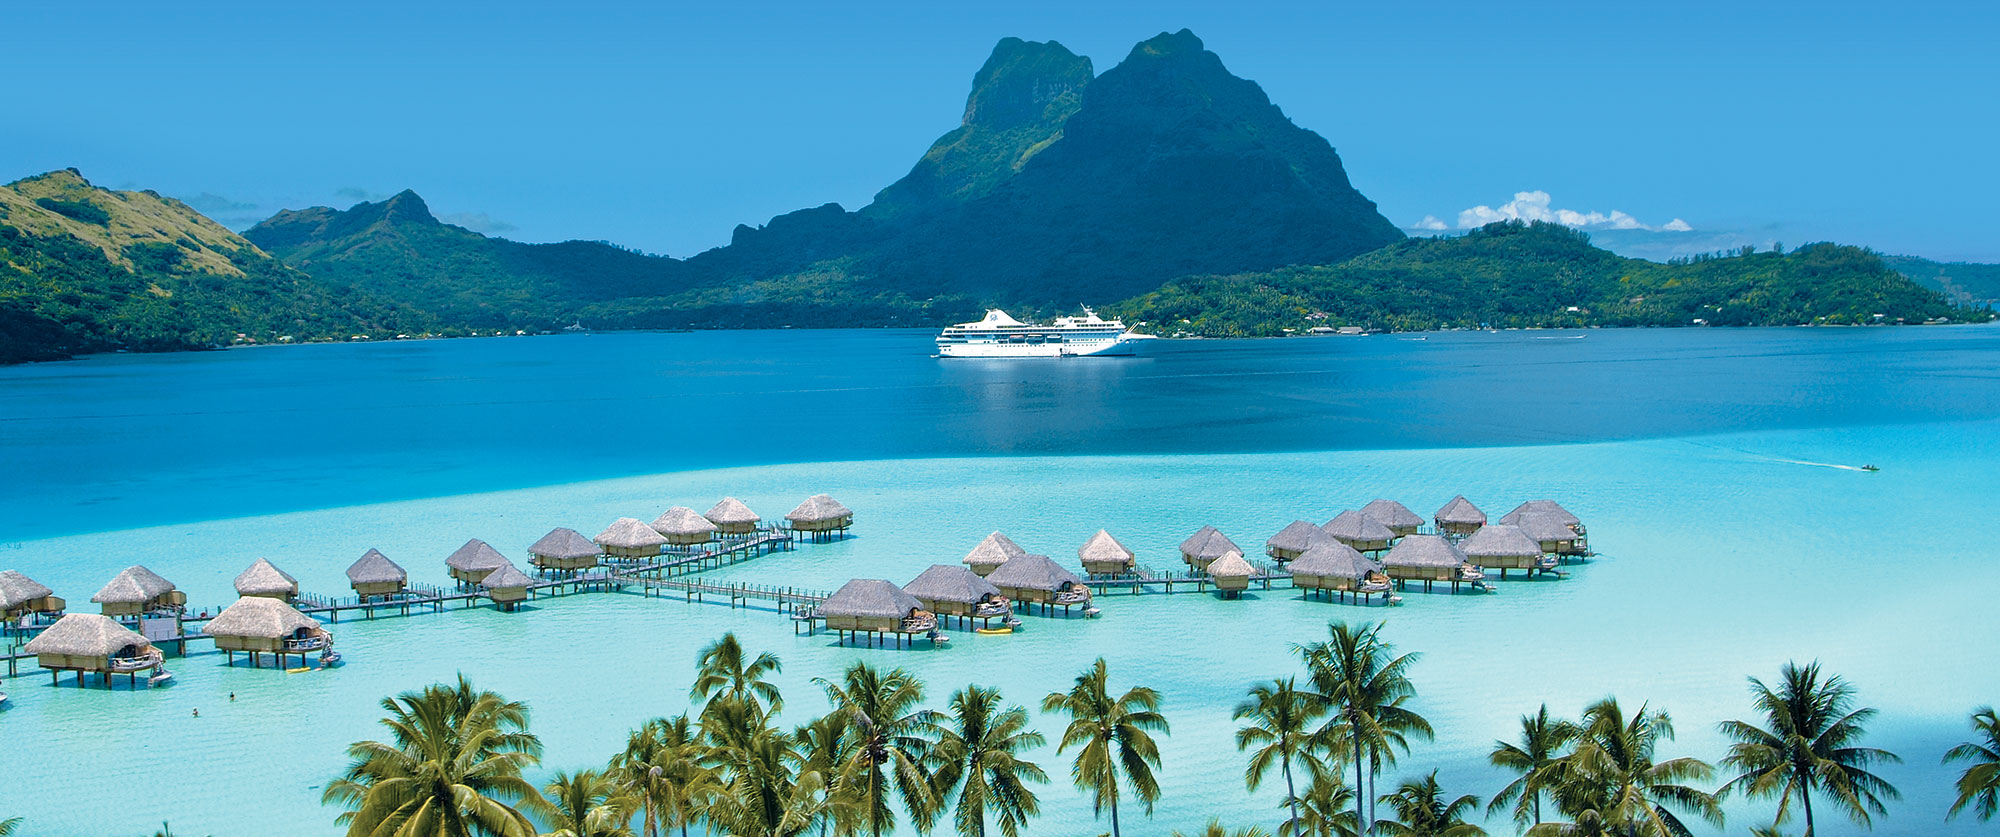 French Polynesia Moorea gay gay